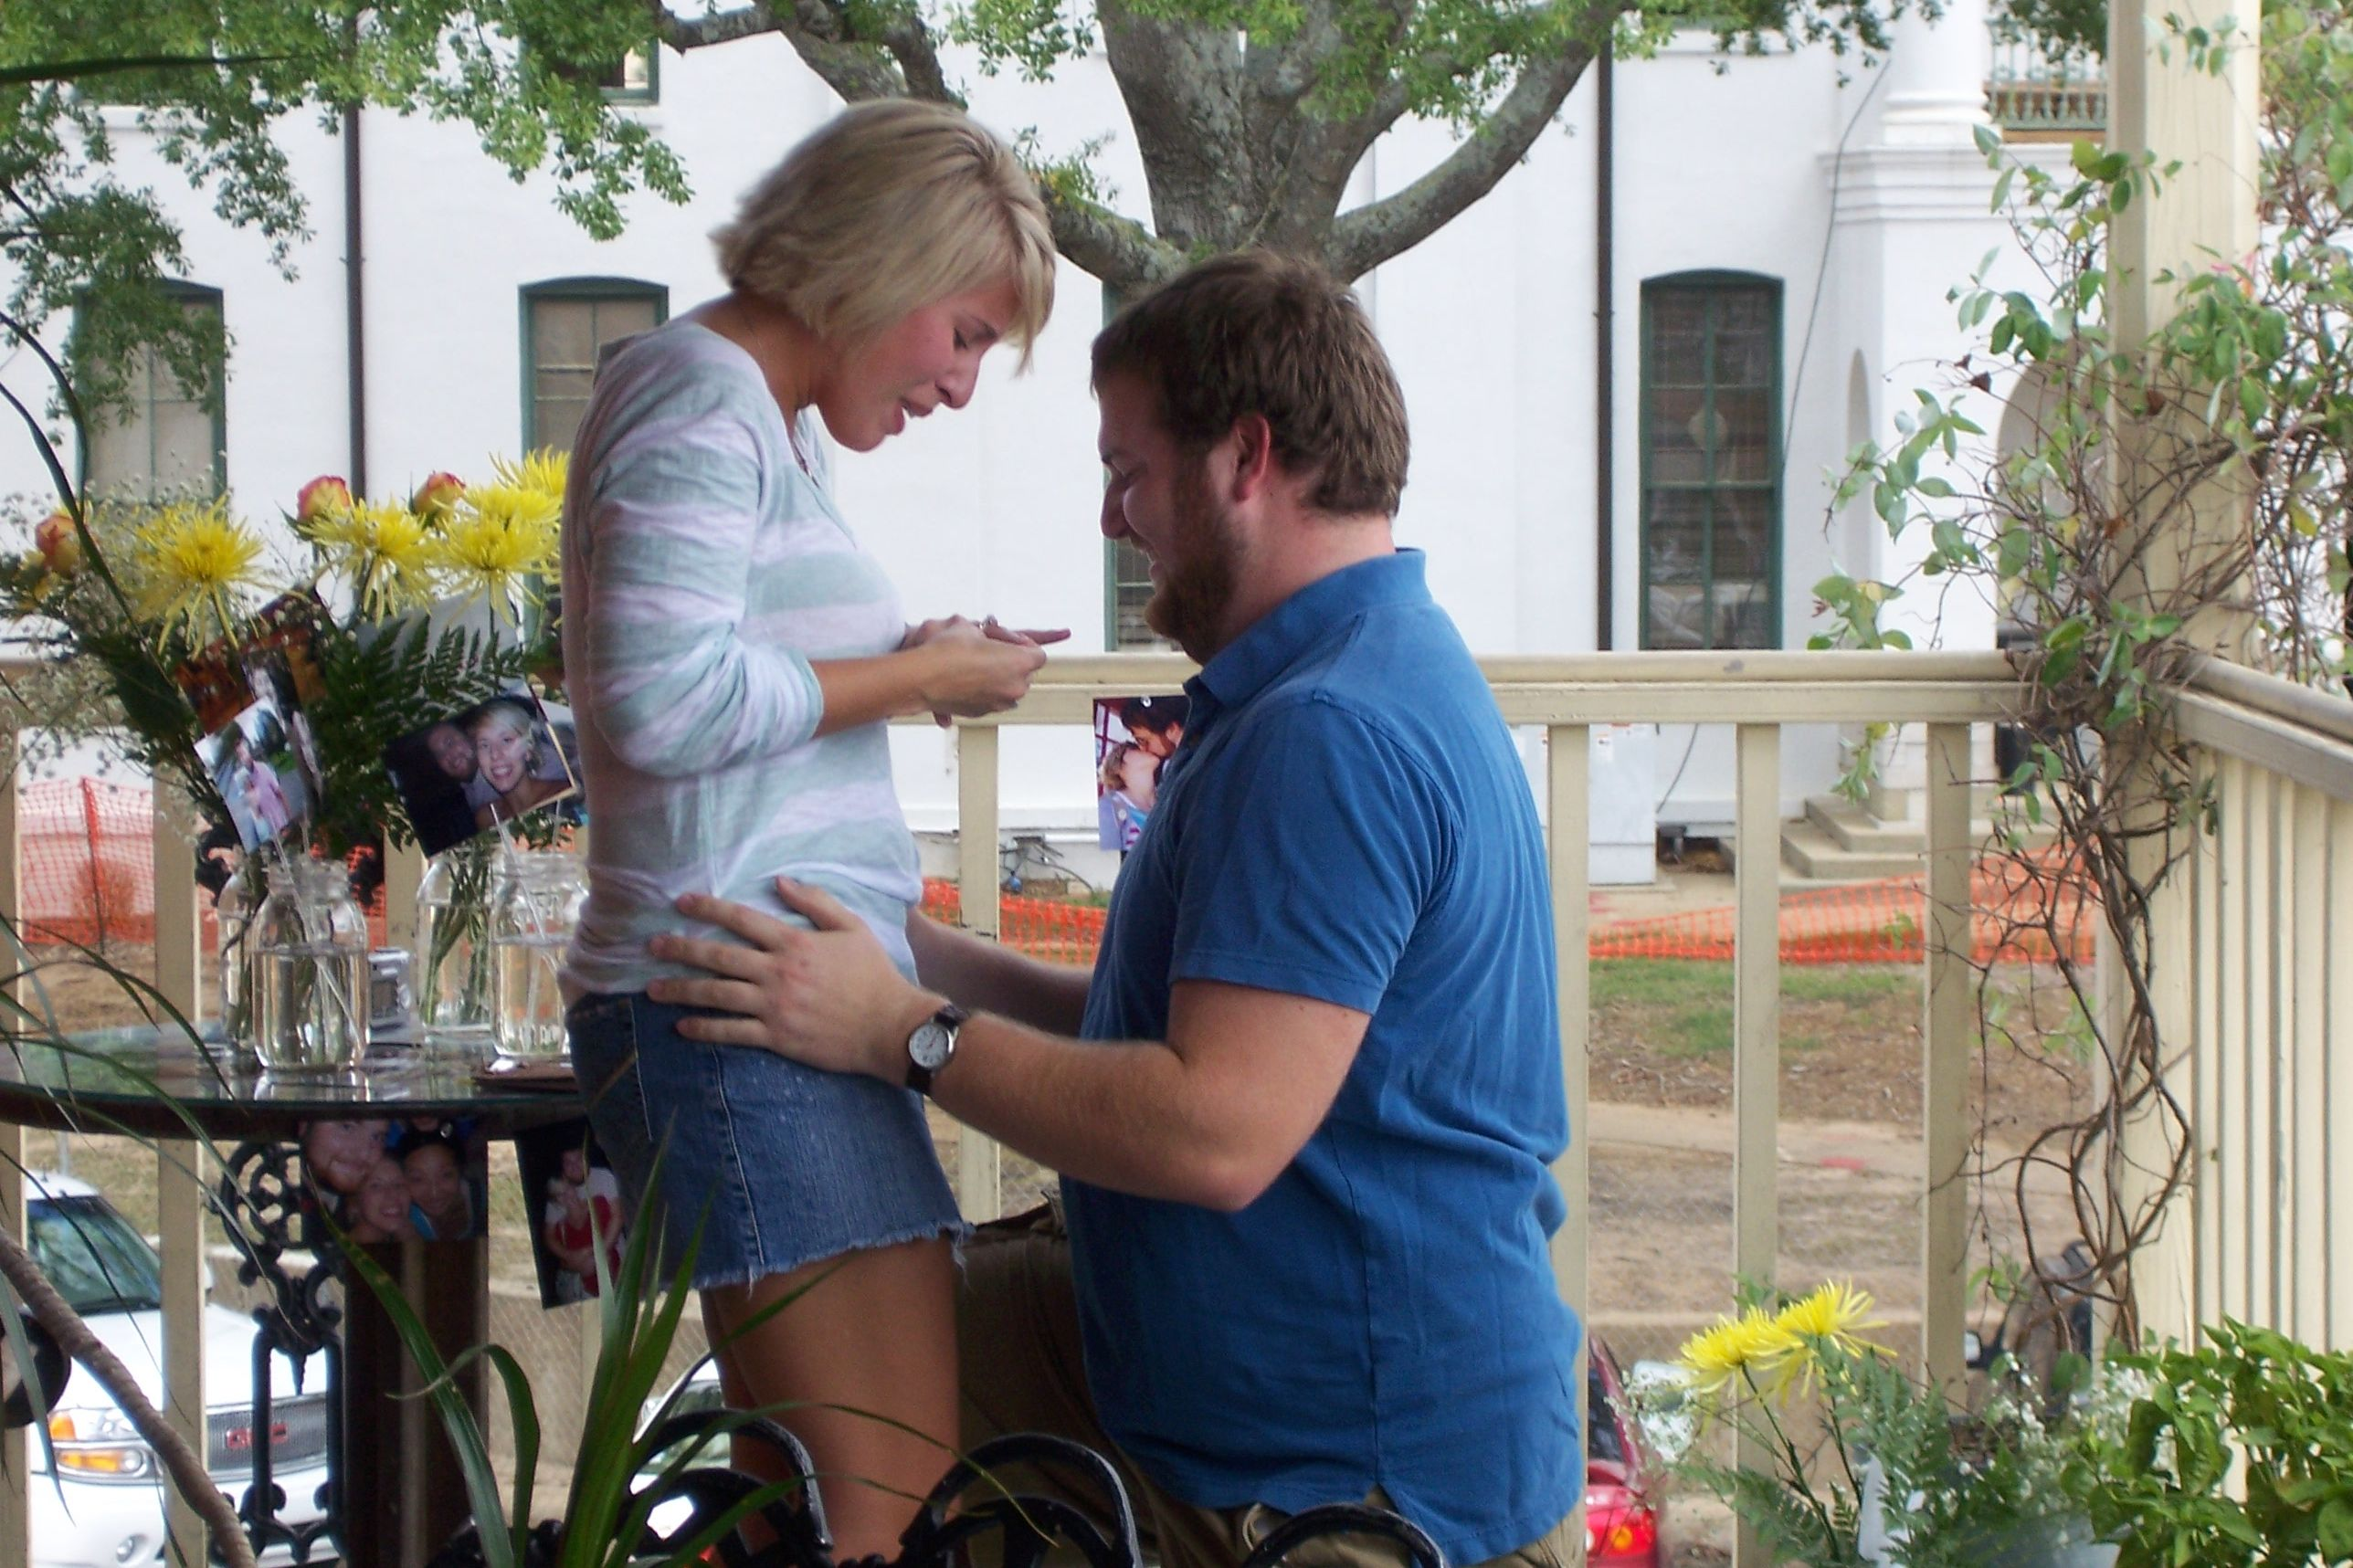 Ben Napier Shares His Romantic Ole Miss Proposal to Erin at Square Books